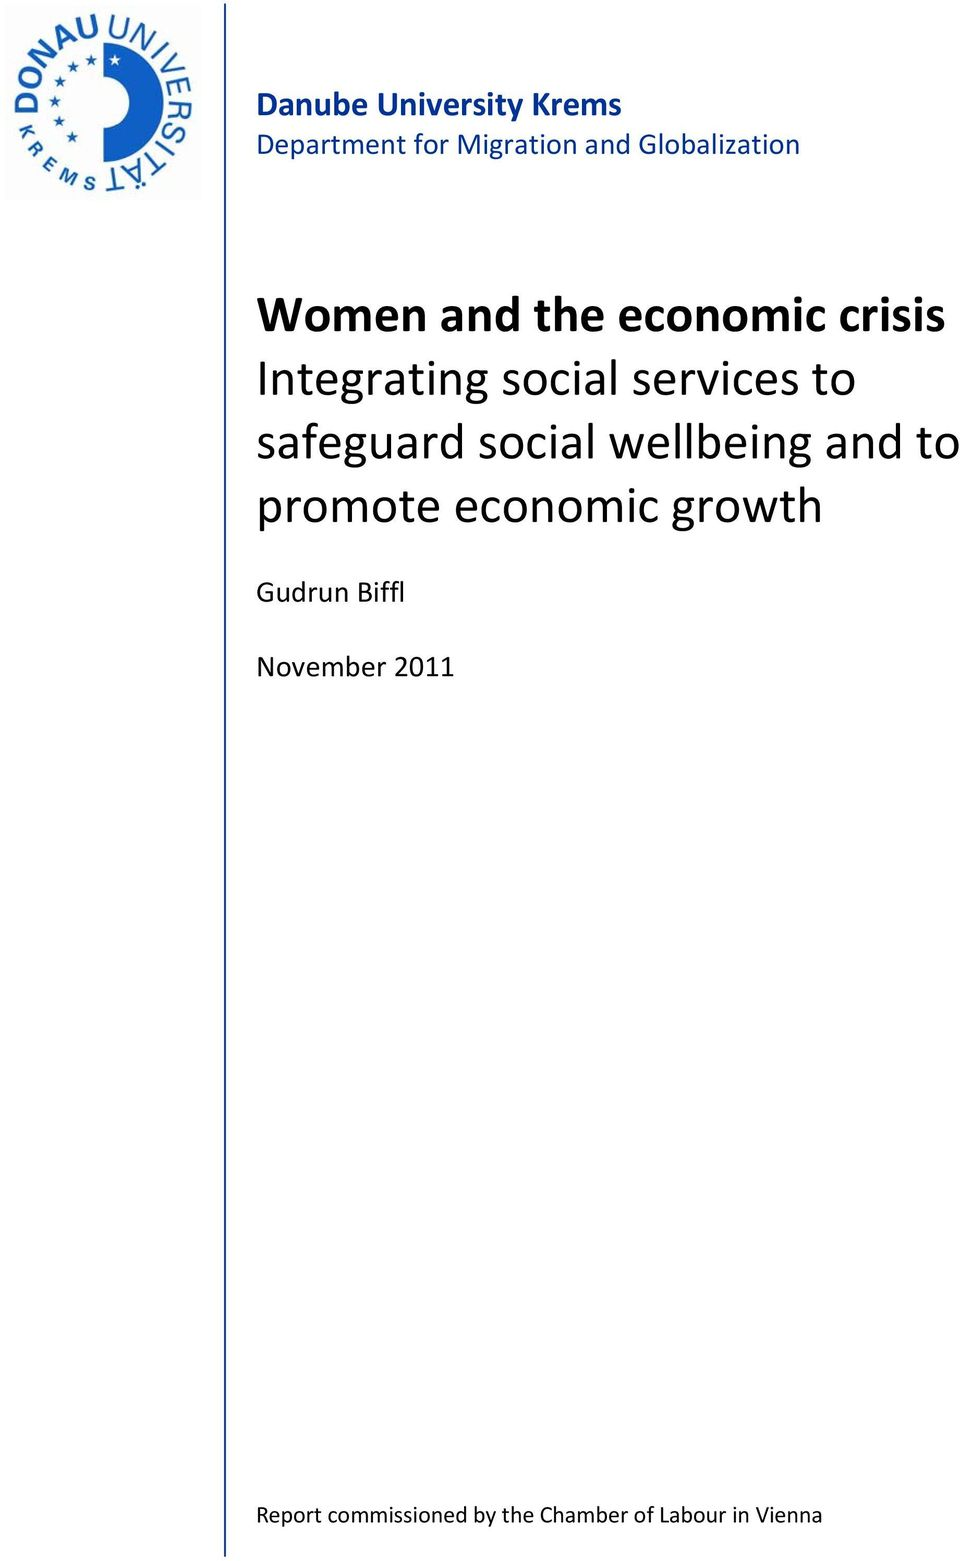 safeguard social wellbeing and to promote economic growth Gudrun